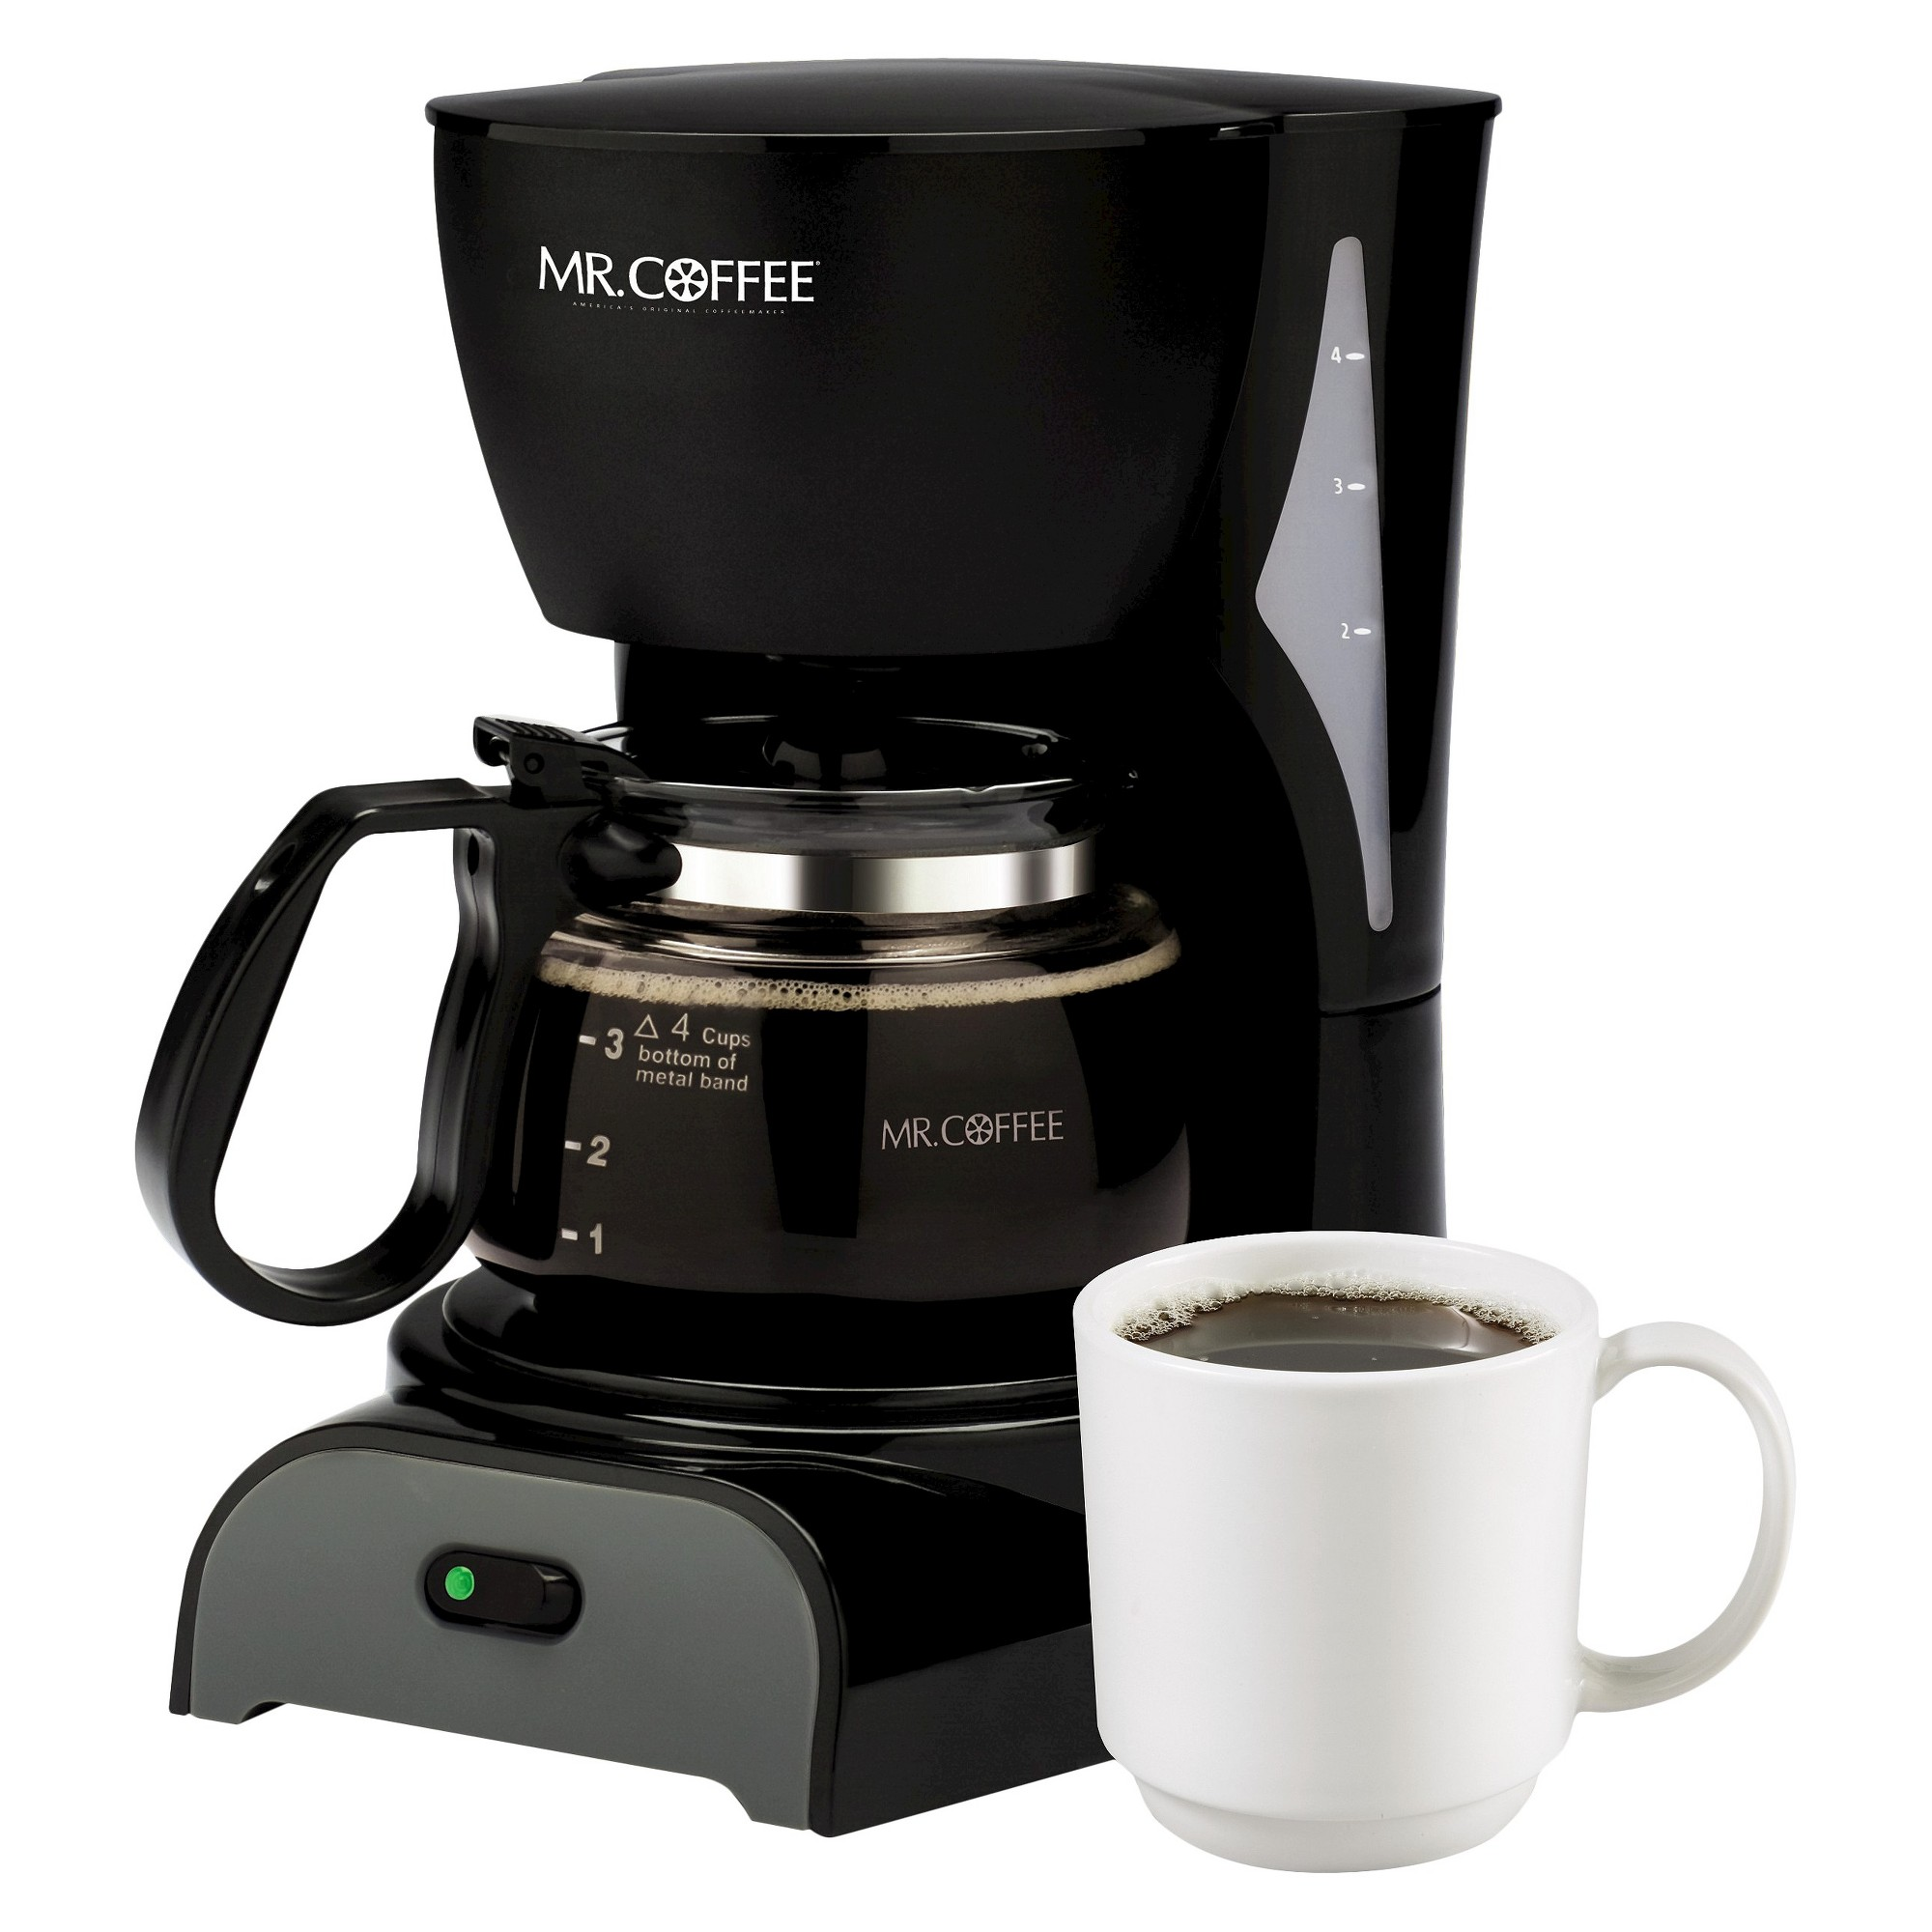 Mr. Coffee 4 Cup Coffee Maker Black DR5NP 4 cup coffee